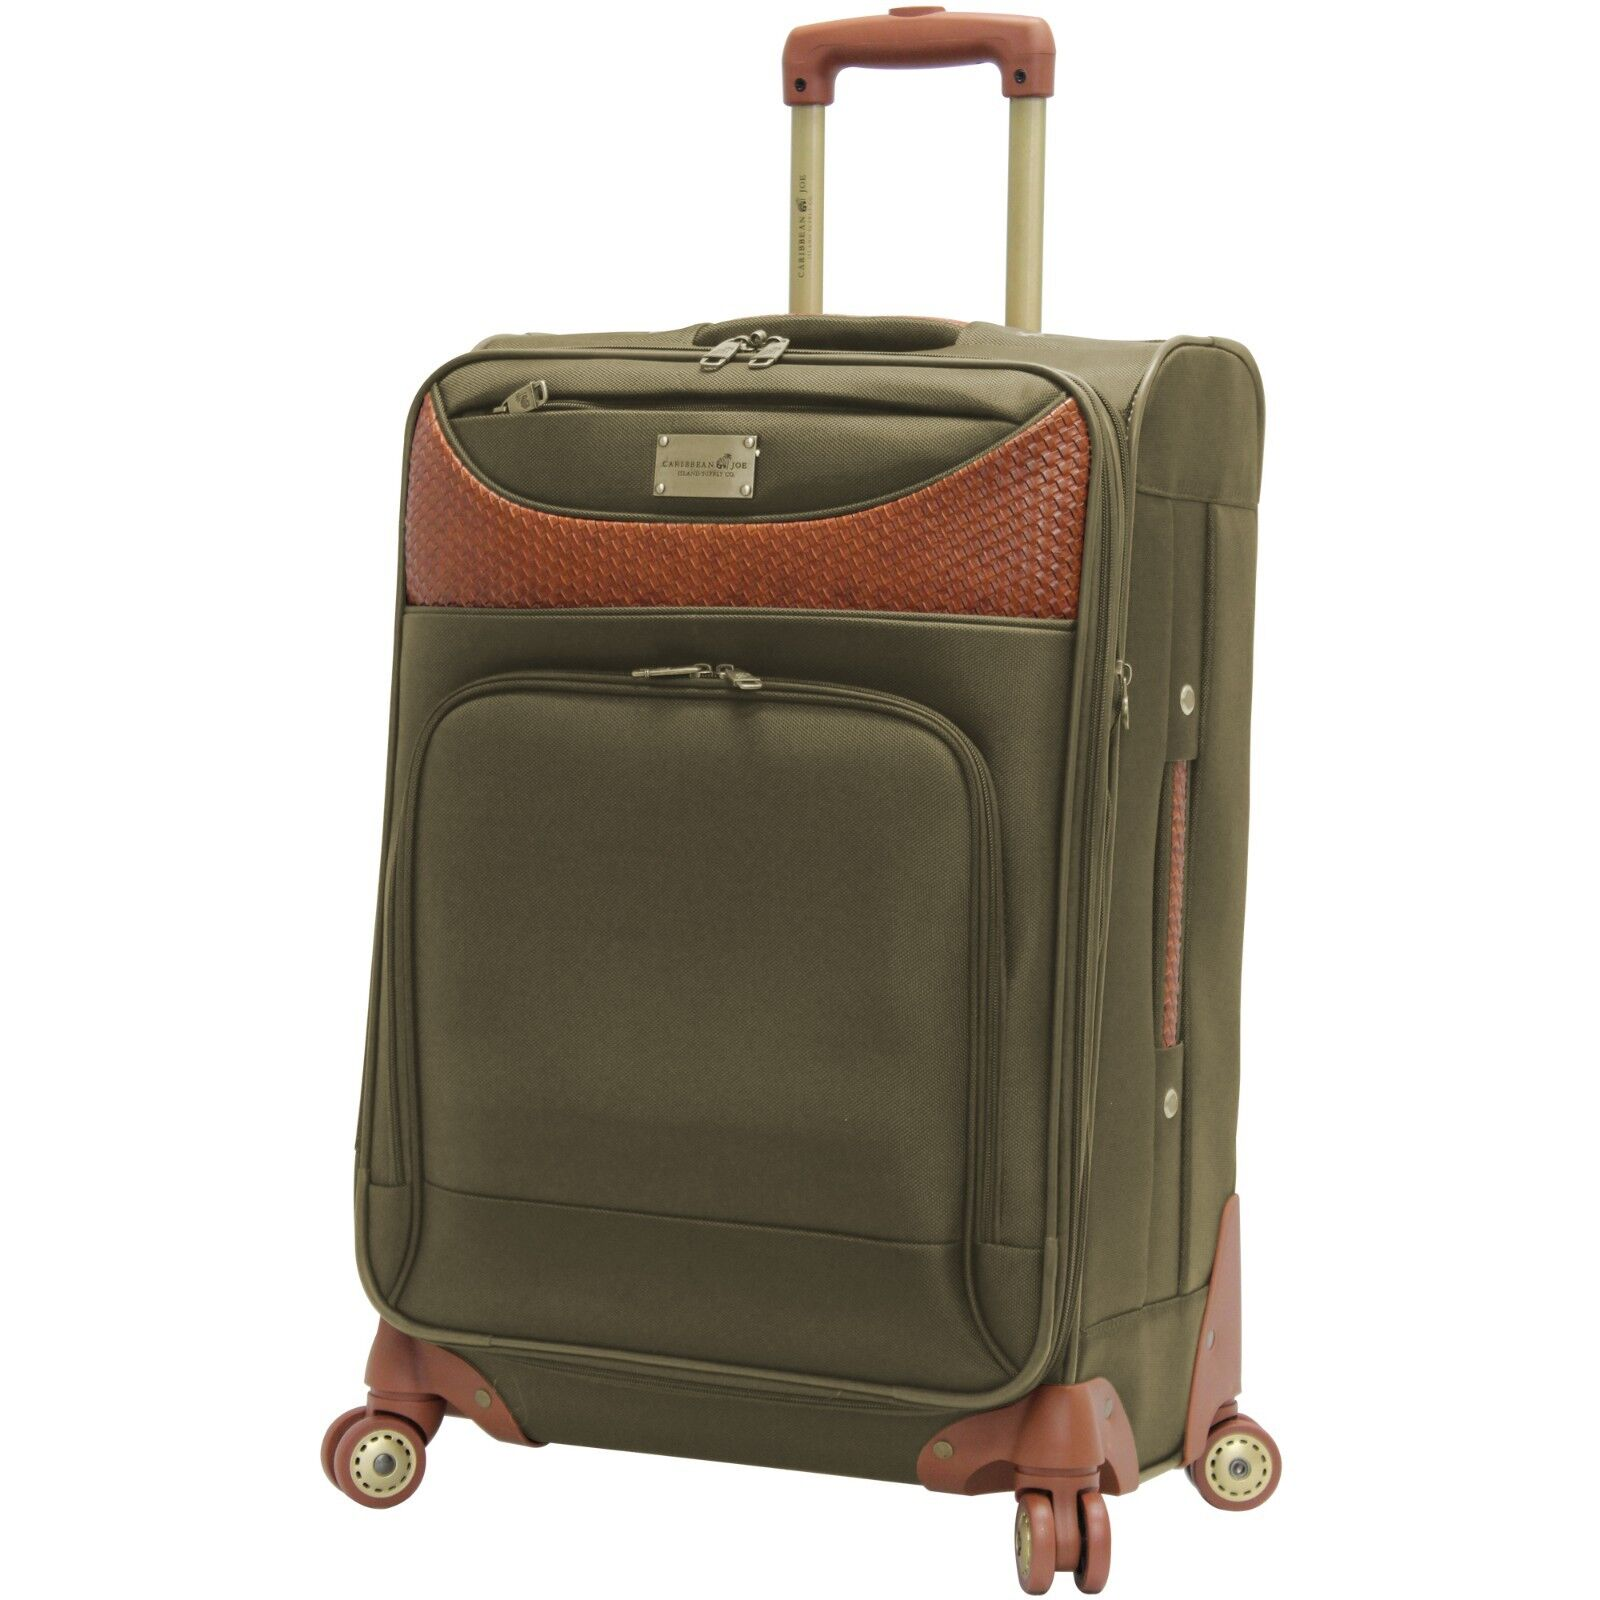 NEW Caribbean Joe Luggage 24 Inch 8 Wheel Spinner